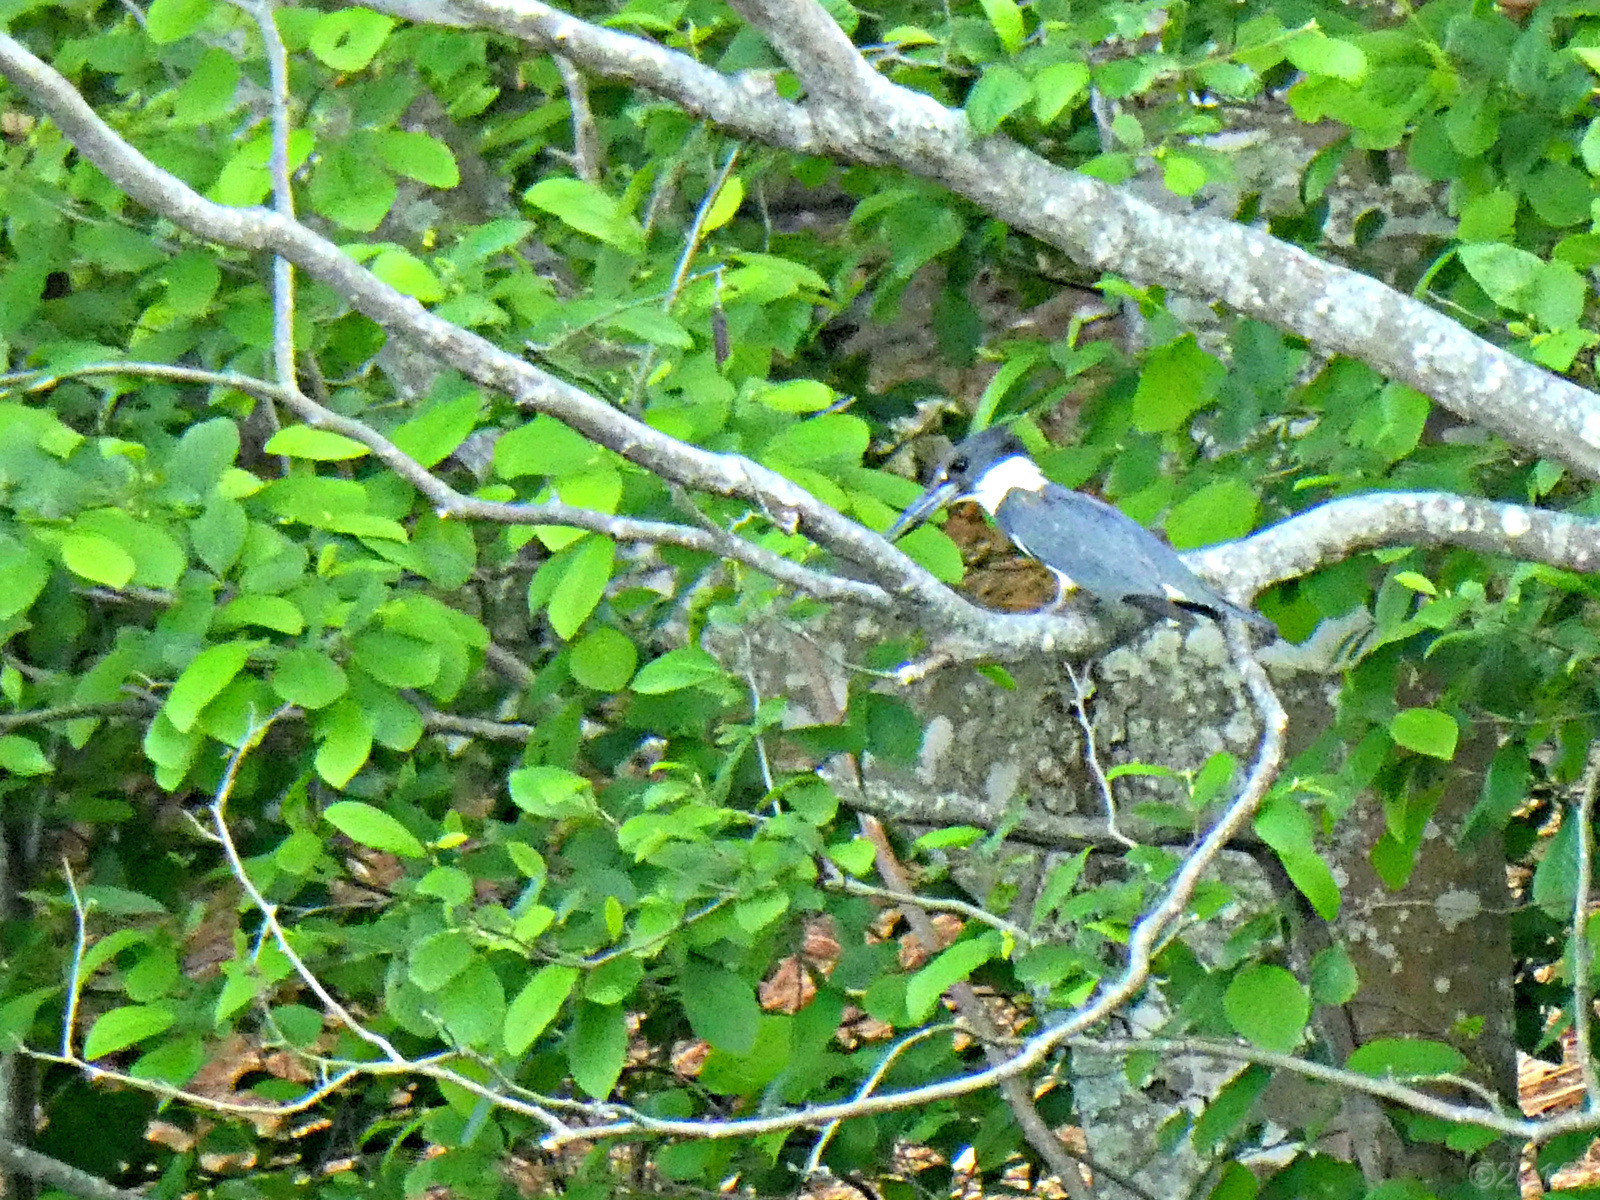 May 17, 2018 - Belted Kingfisher in Bent Tree